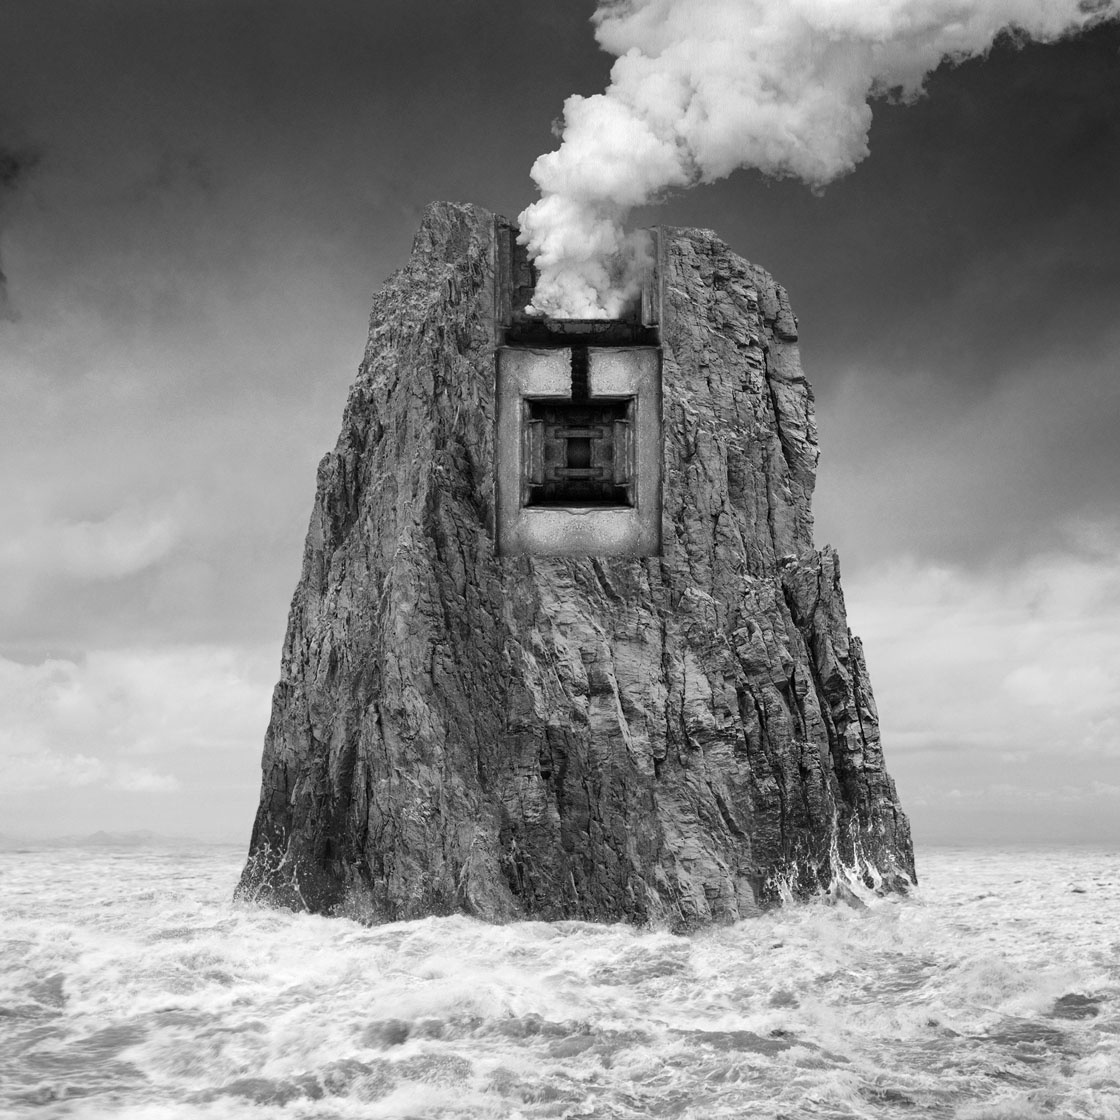 © Jim Kazanjian. Untitled (fortification). 2008